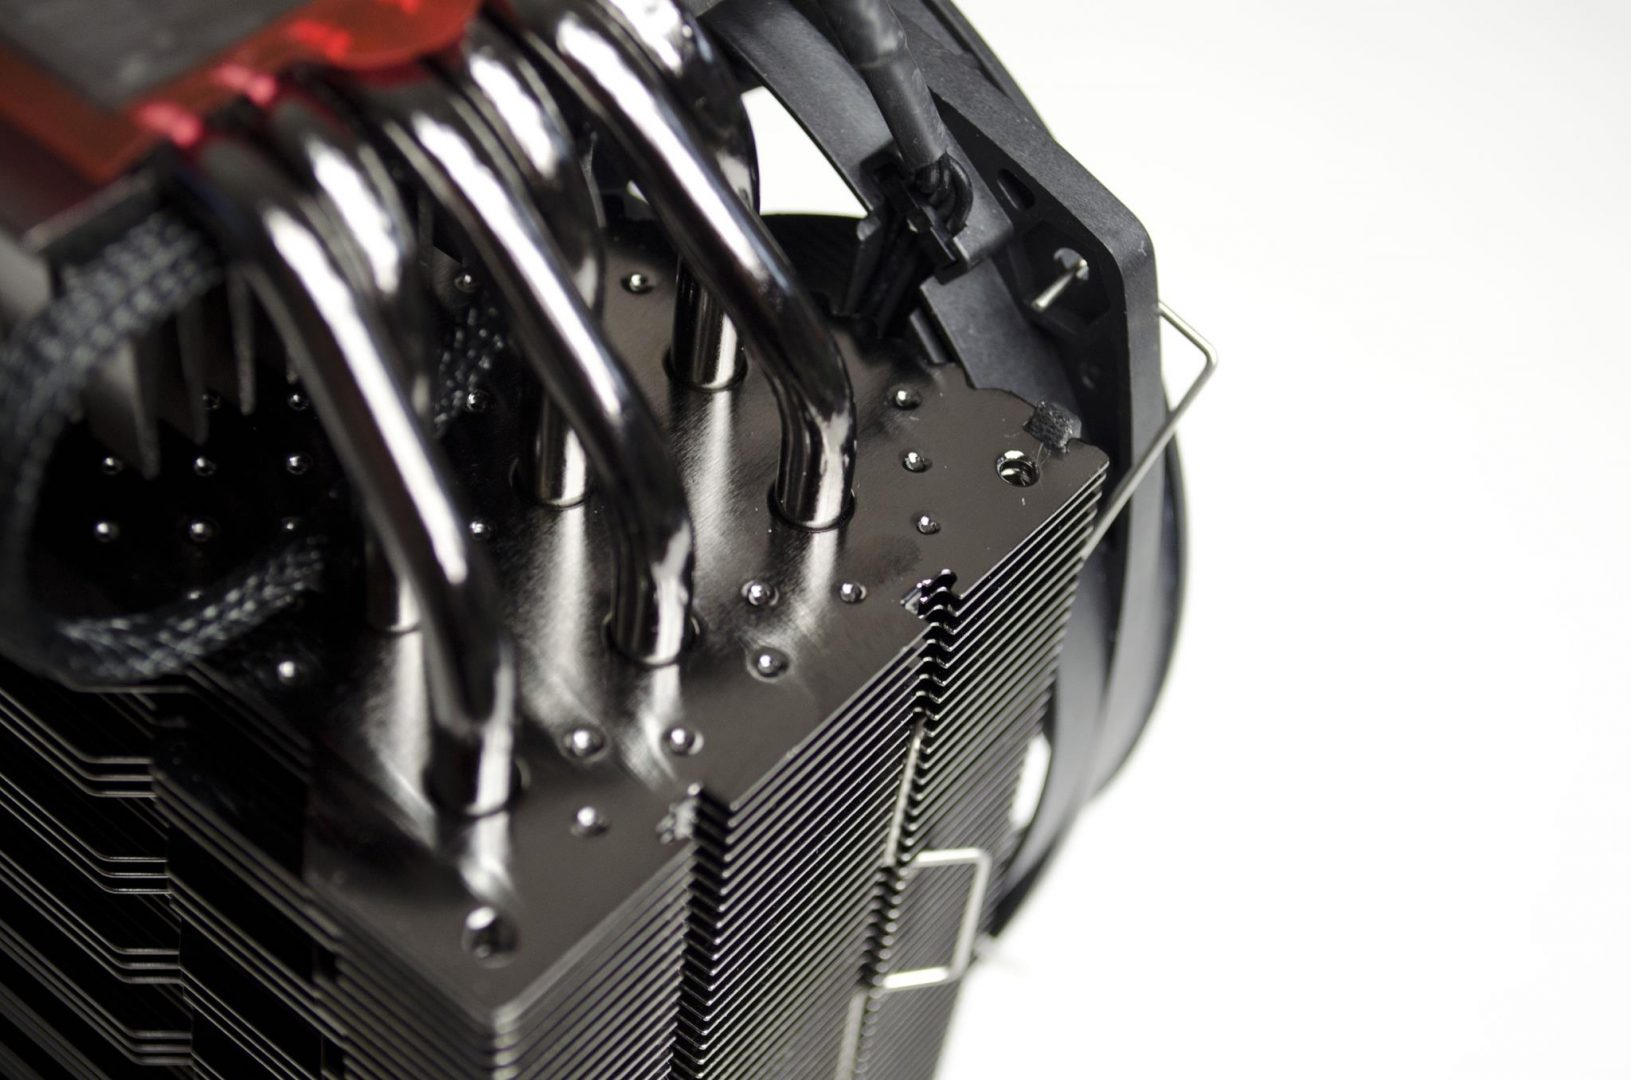 be quiet! Dark Rock Pro 3 CPU Cooler Review_8